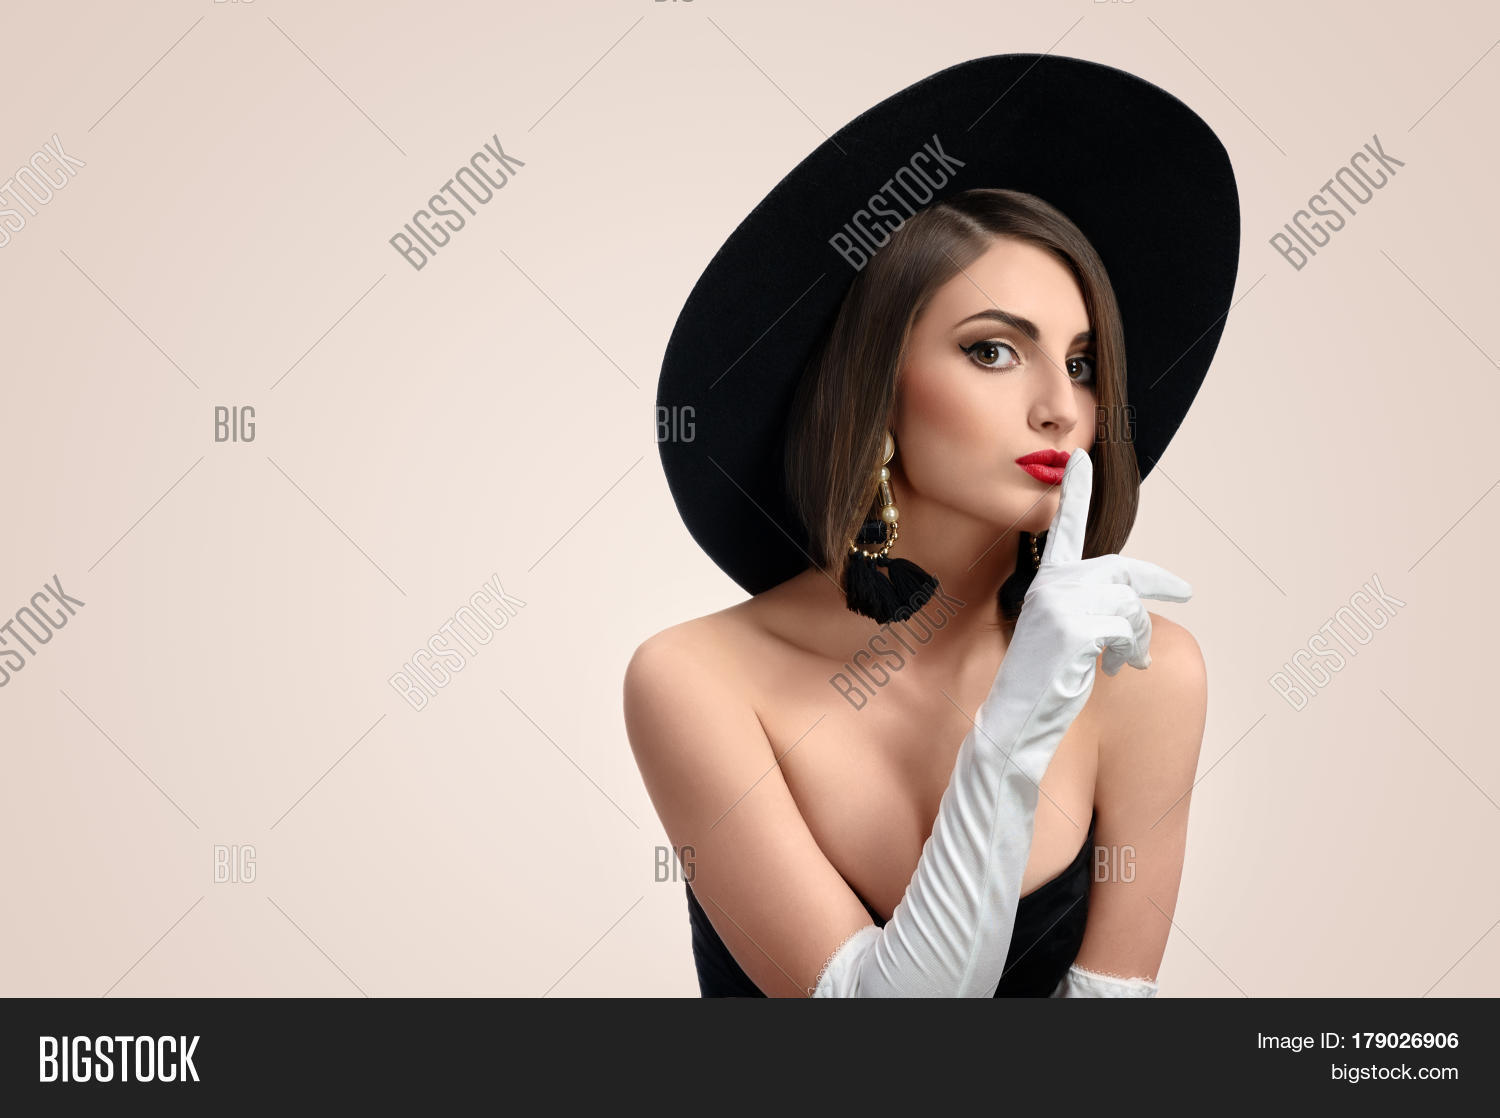 82e4e300c Gorgeous Young Red Image & Photo (Free Trial) | Bigstock